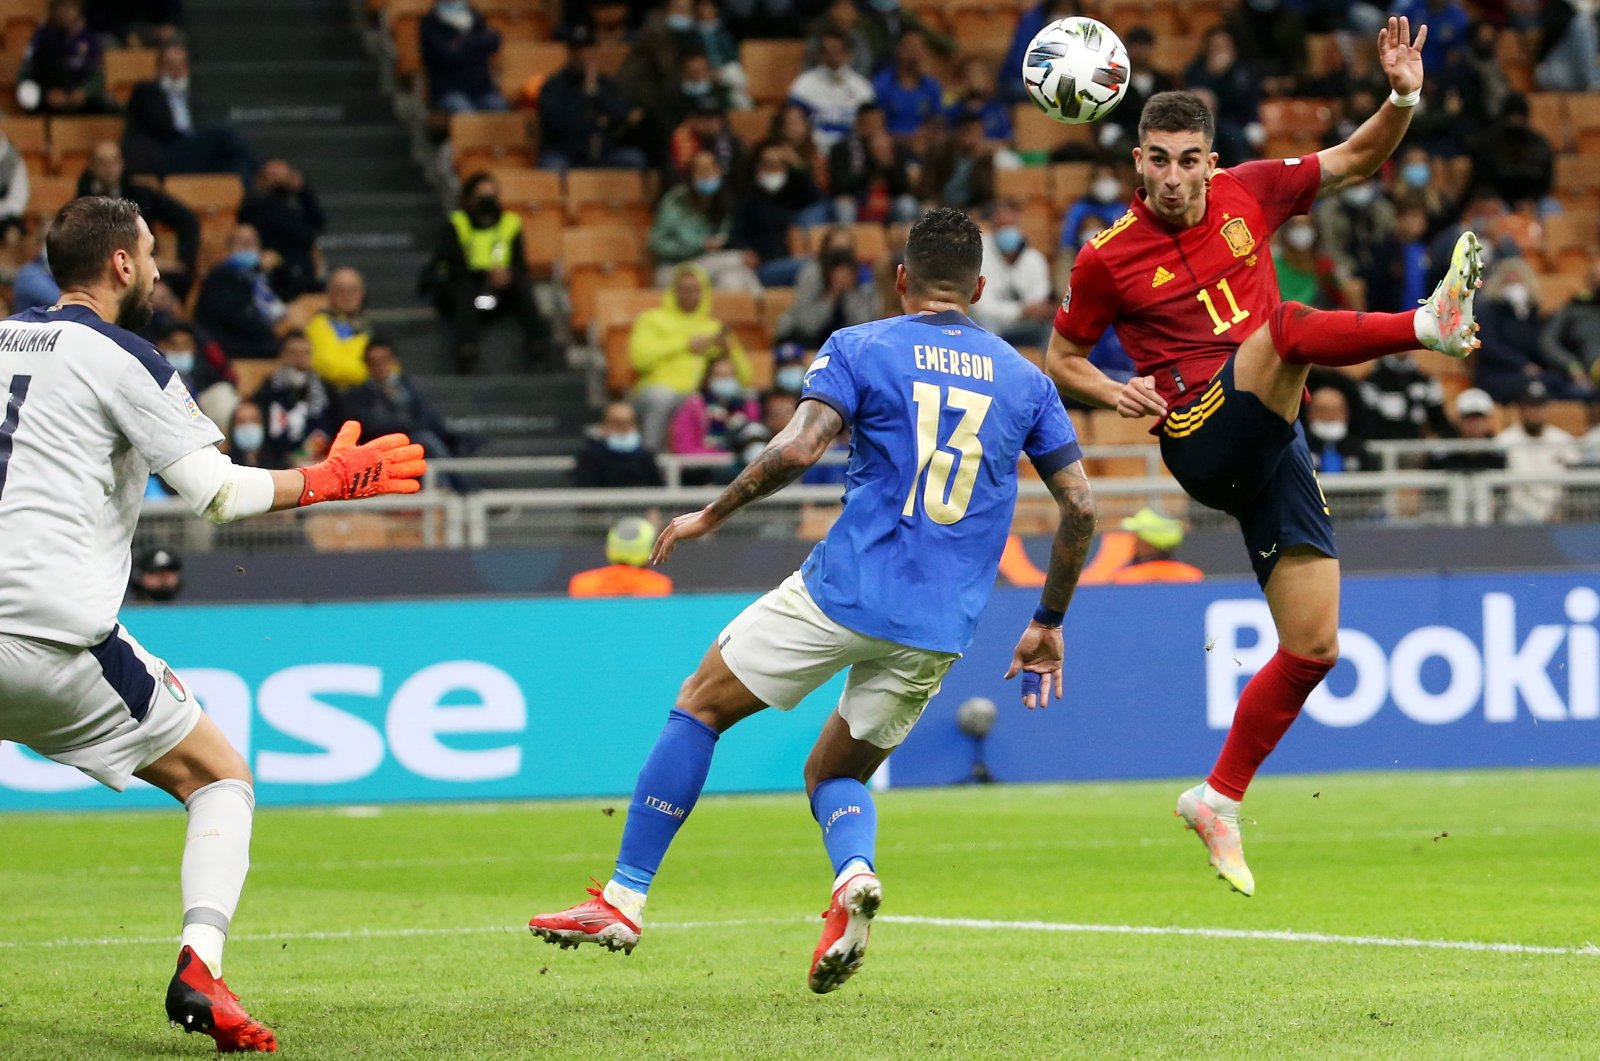 Spain's Ferran Torres (R) as Spain scores its second goal against Italy in the UEFA Nations League semifinal, Milan, Italy, Oct. 6, 2021. (EPA Photo)